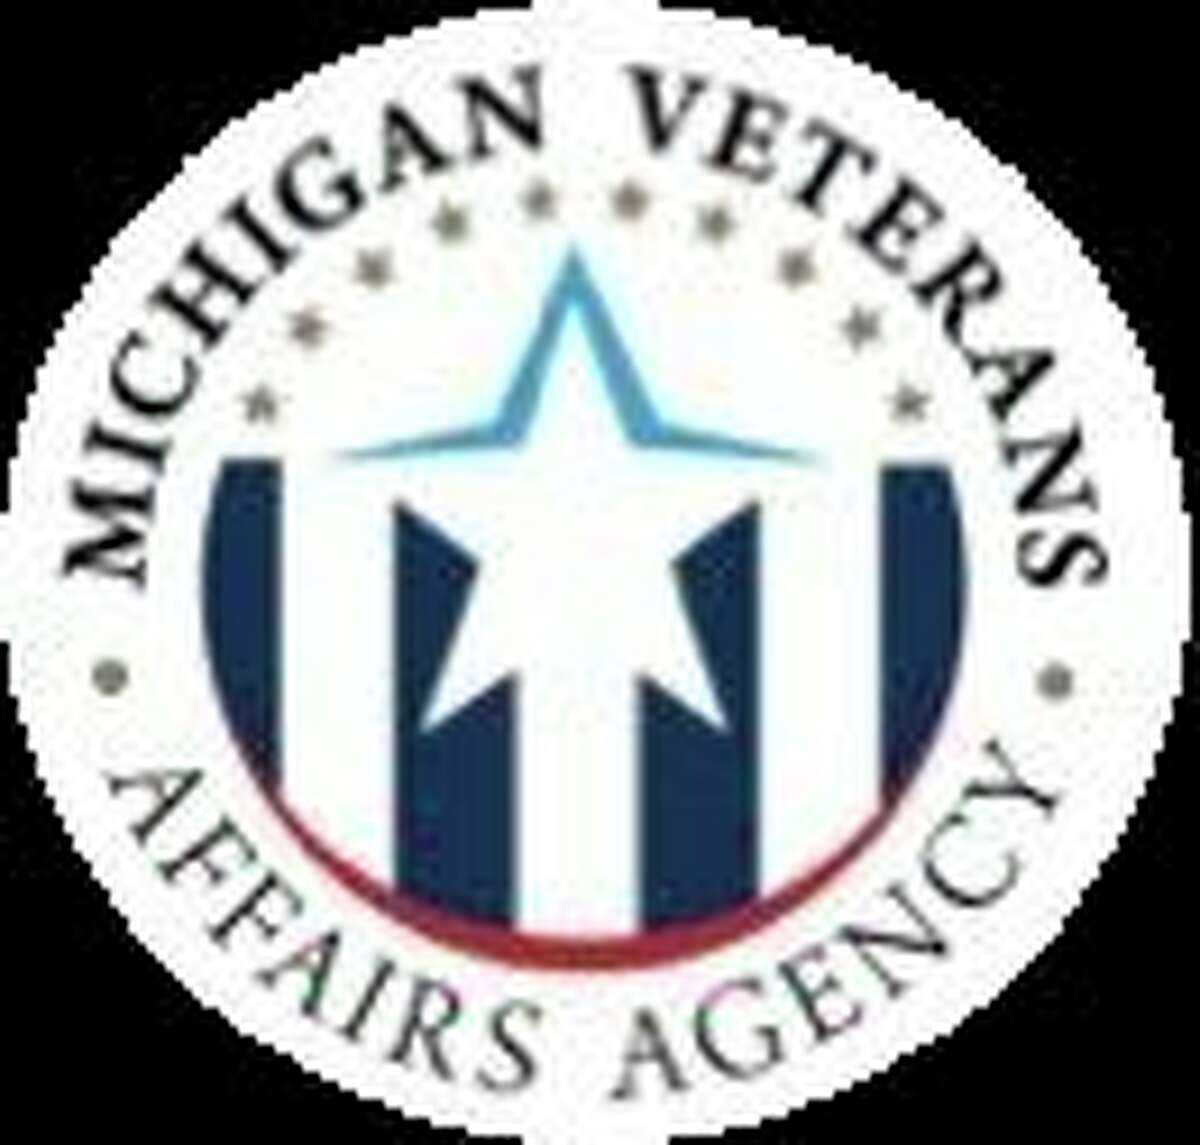 The Michigan Veterans Affairs Agency has given gold-level status to Ferris State University's programming designed to assist students with military service backgrounds. (Courtesy photo)